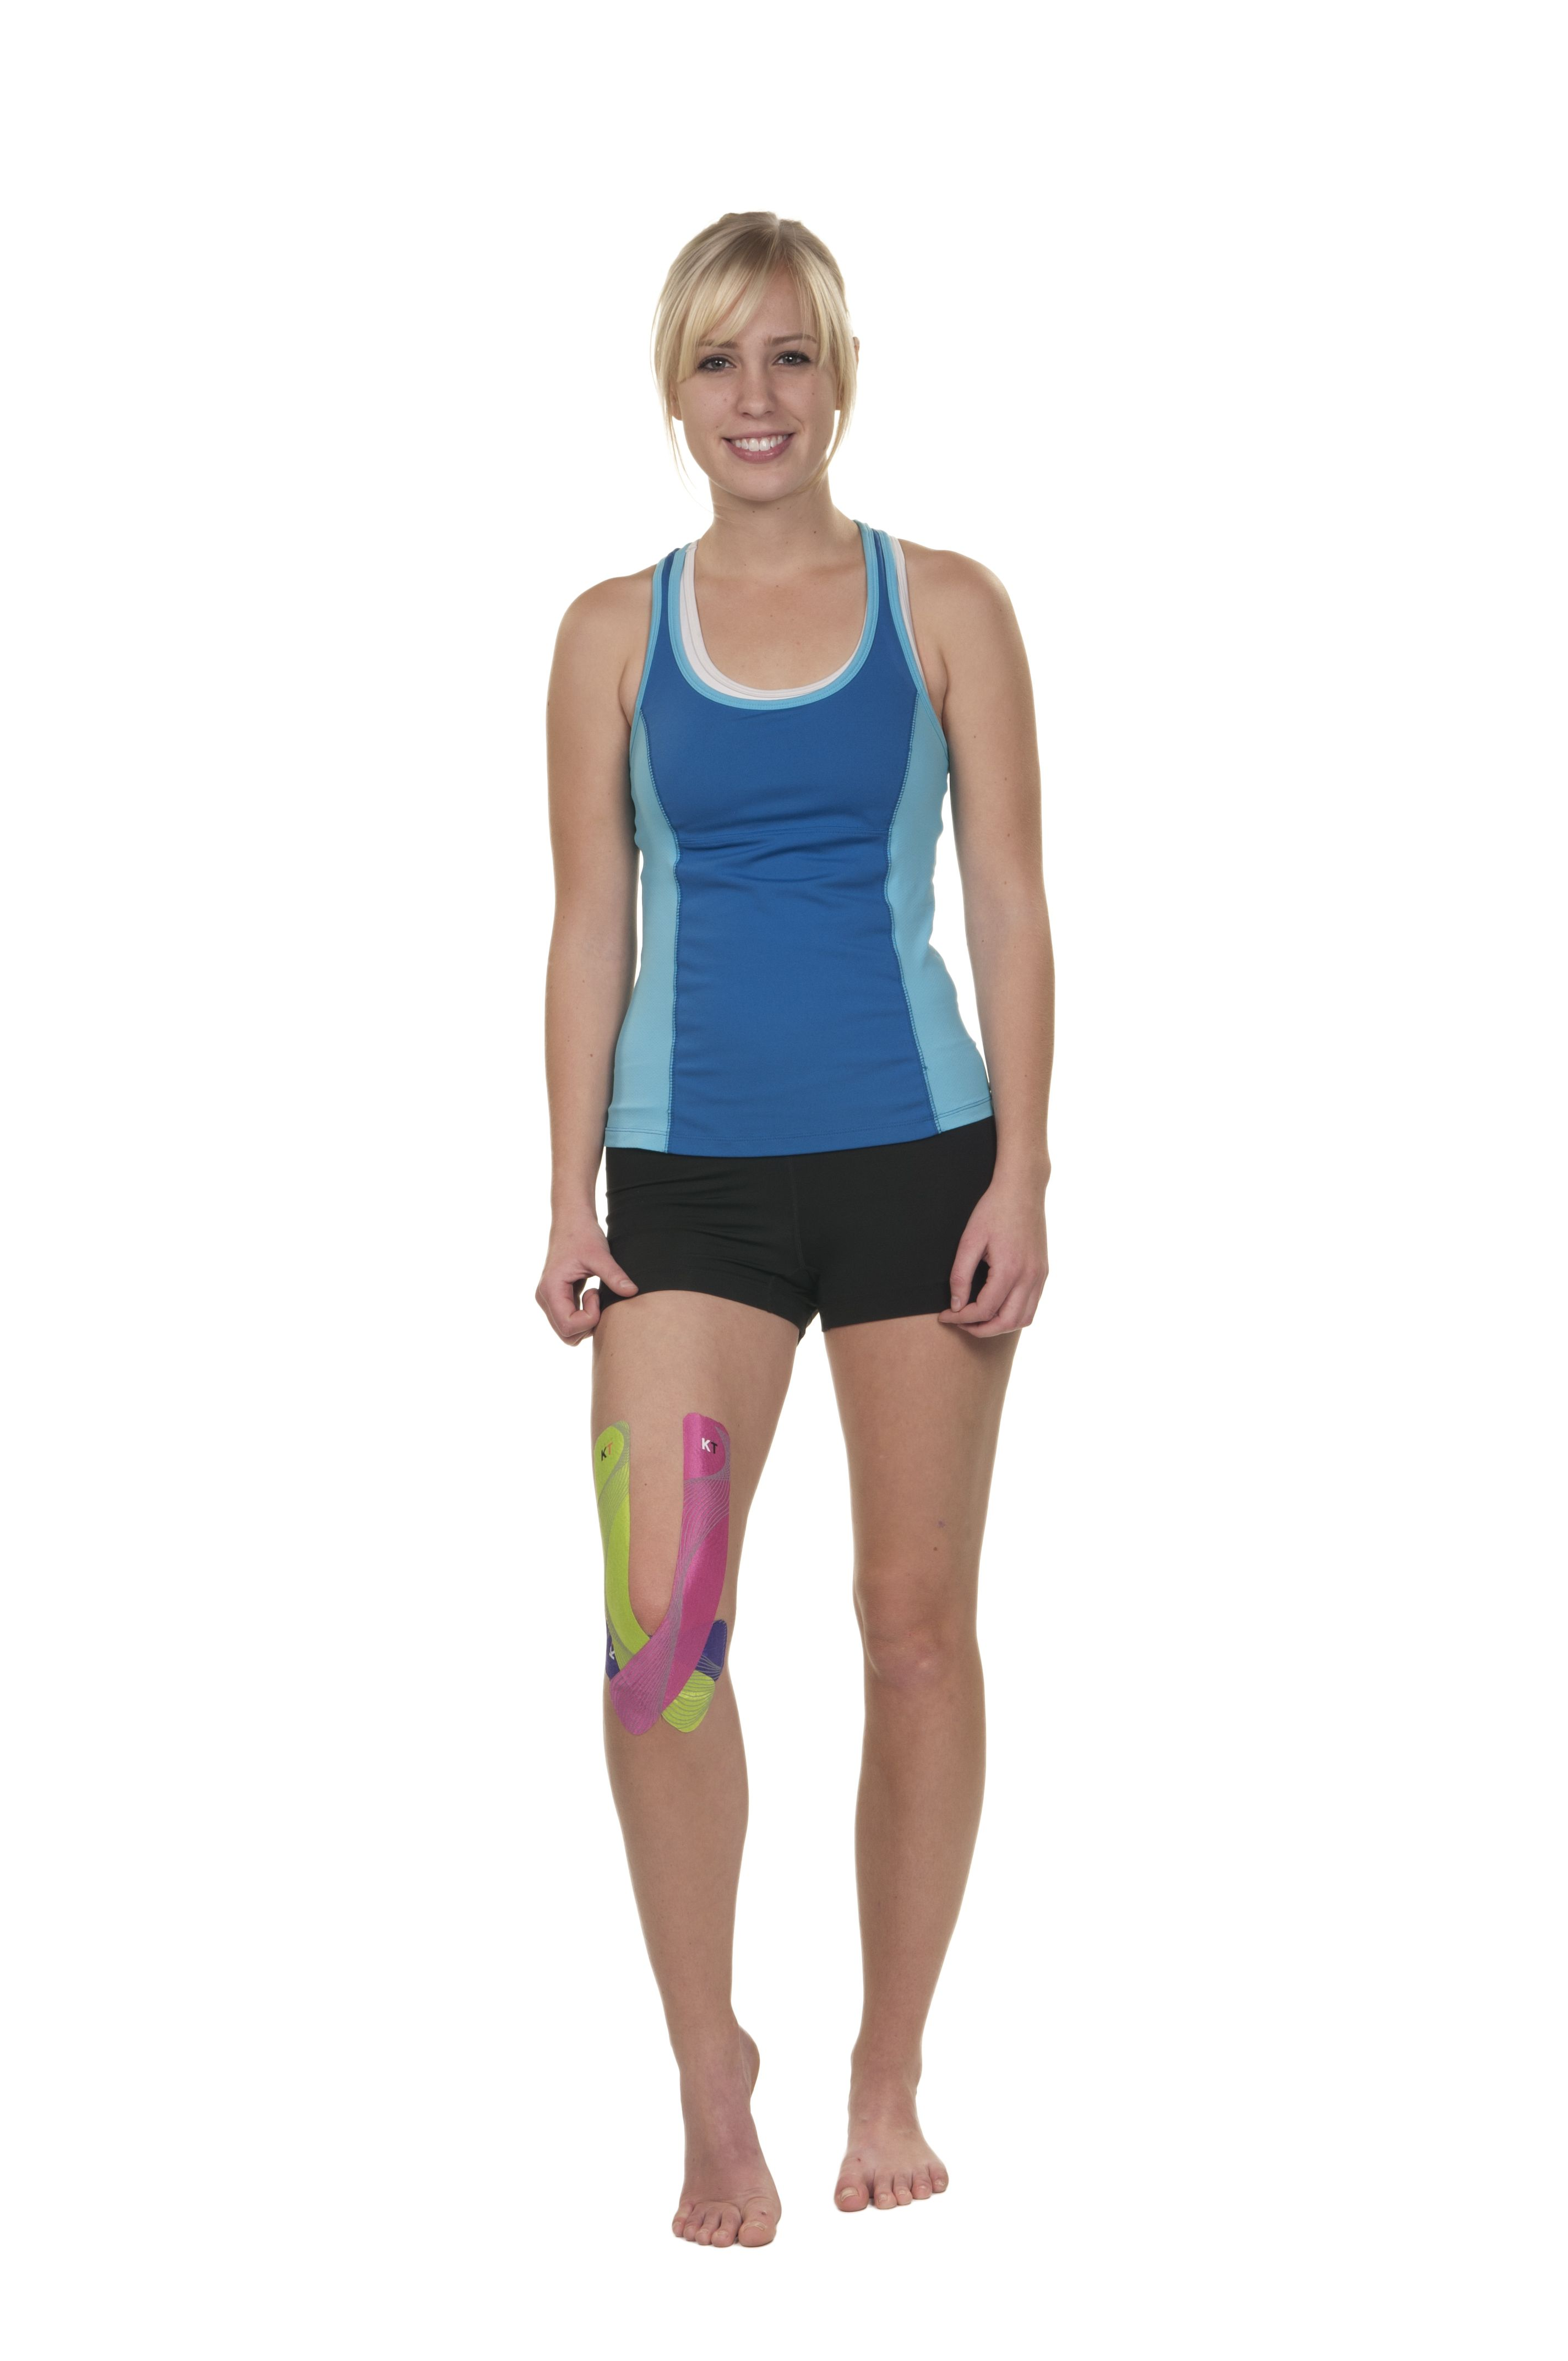 Kt tape full knee support application kinesiology taping